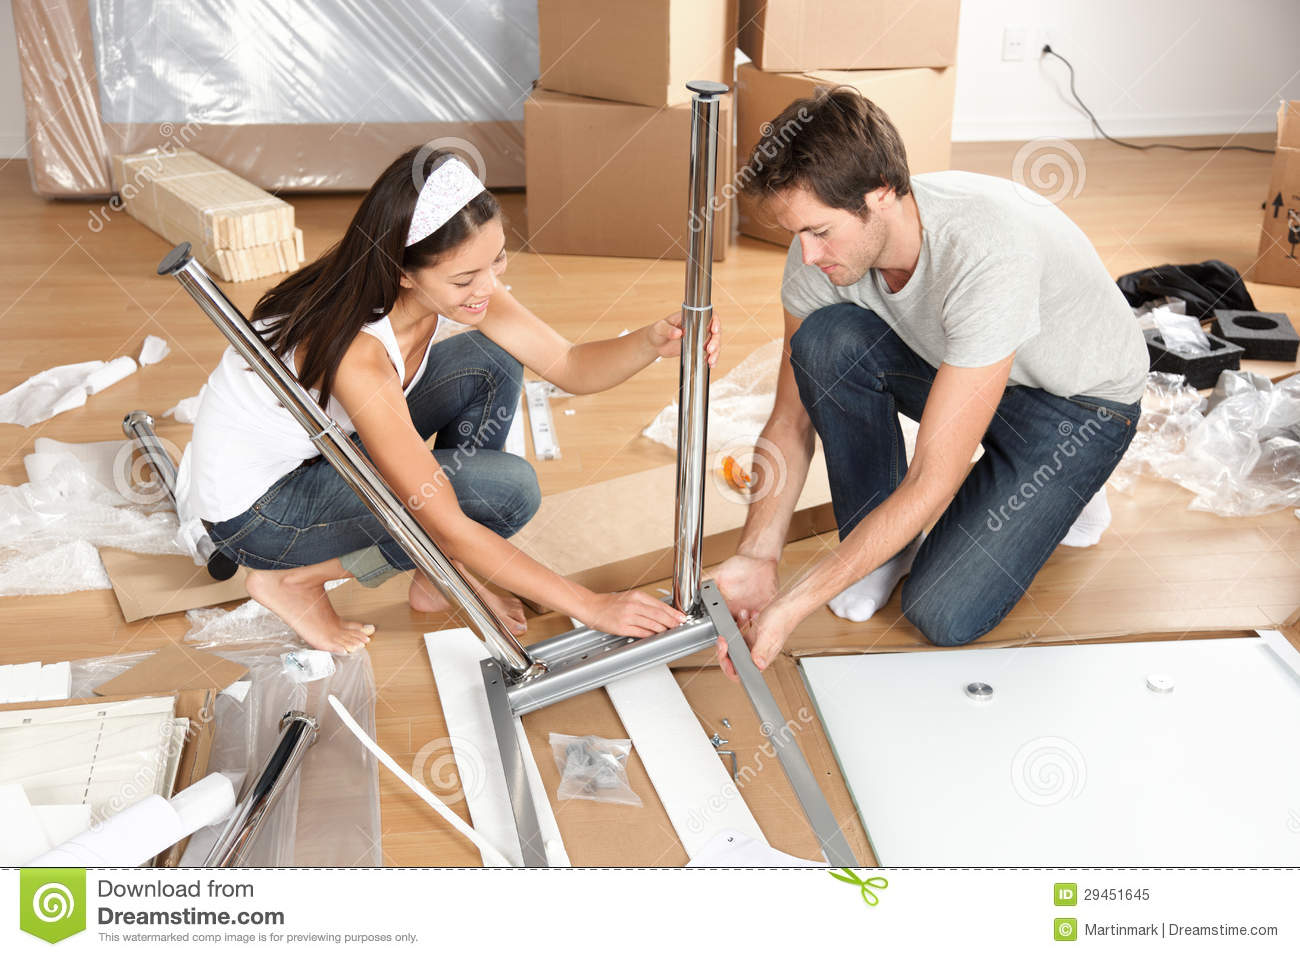 Design Home App How To Move Furniture Couple Moving In Together Assembling Furniture Table